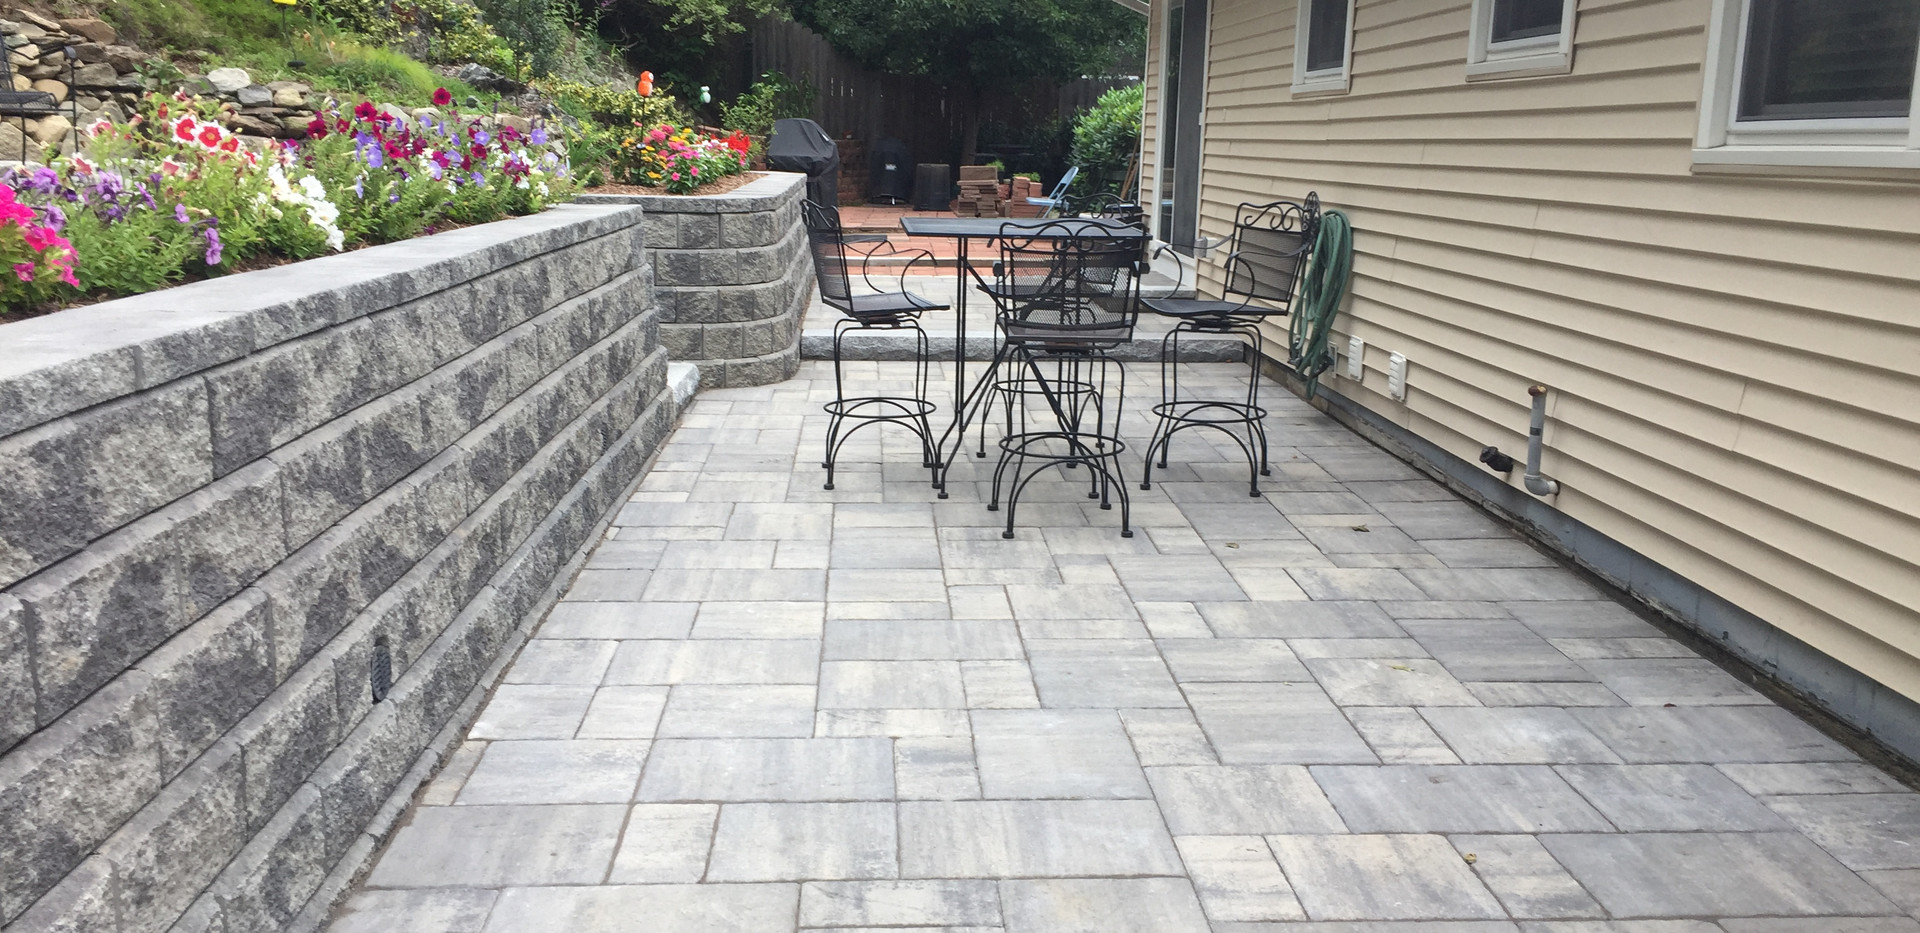 Walkways and Patios 2.JPG